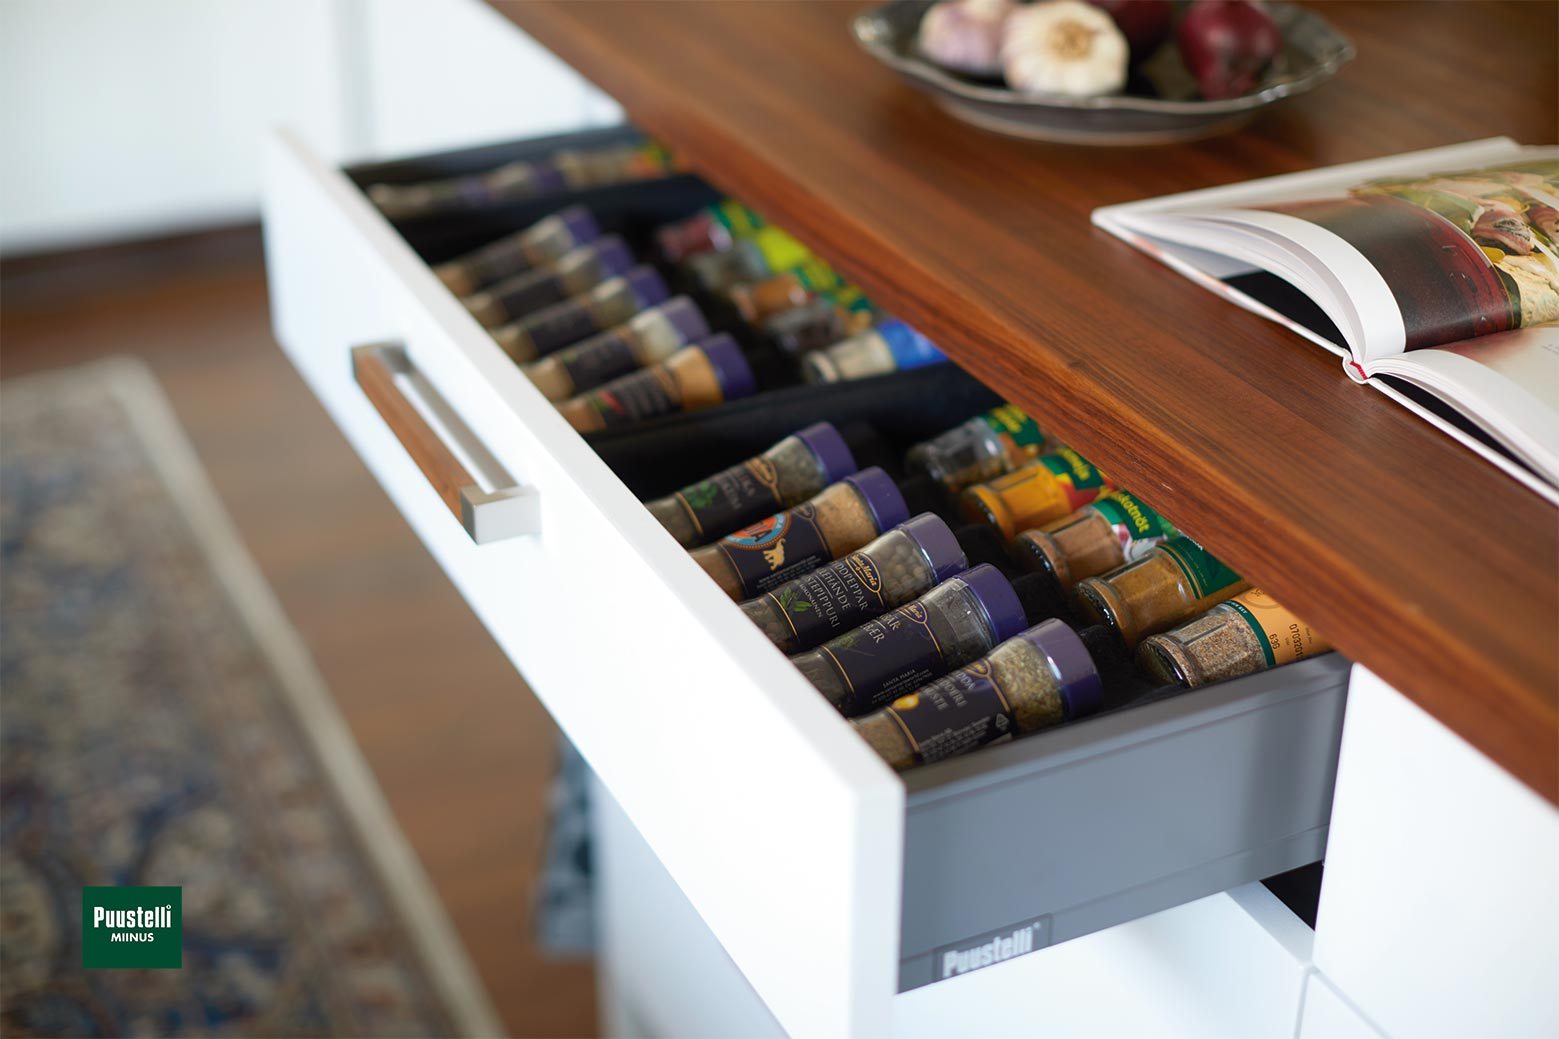 Puustelli Miinus ecological kitchen in white and lacquered dark brown birch veneer spice rack drawer